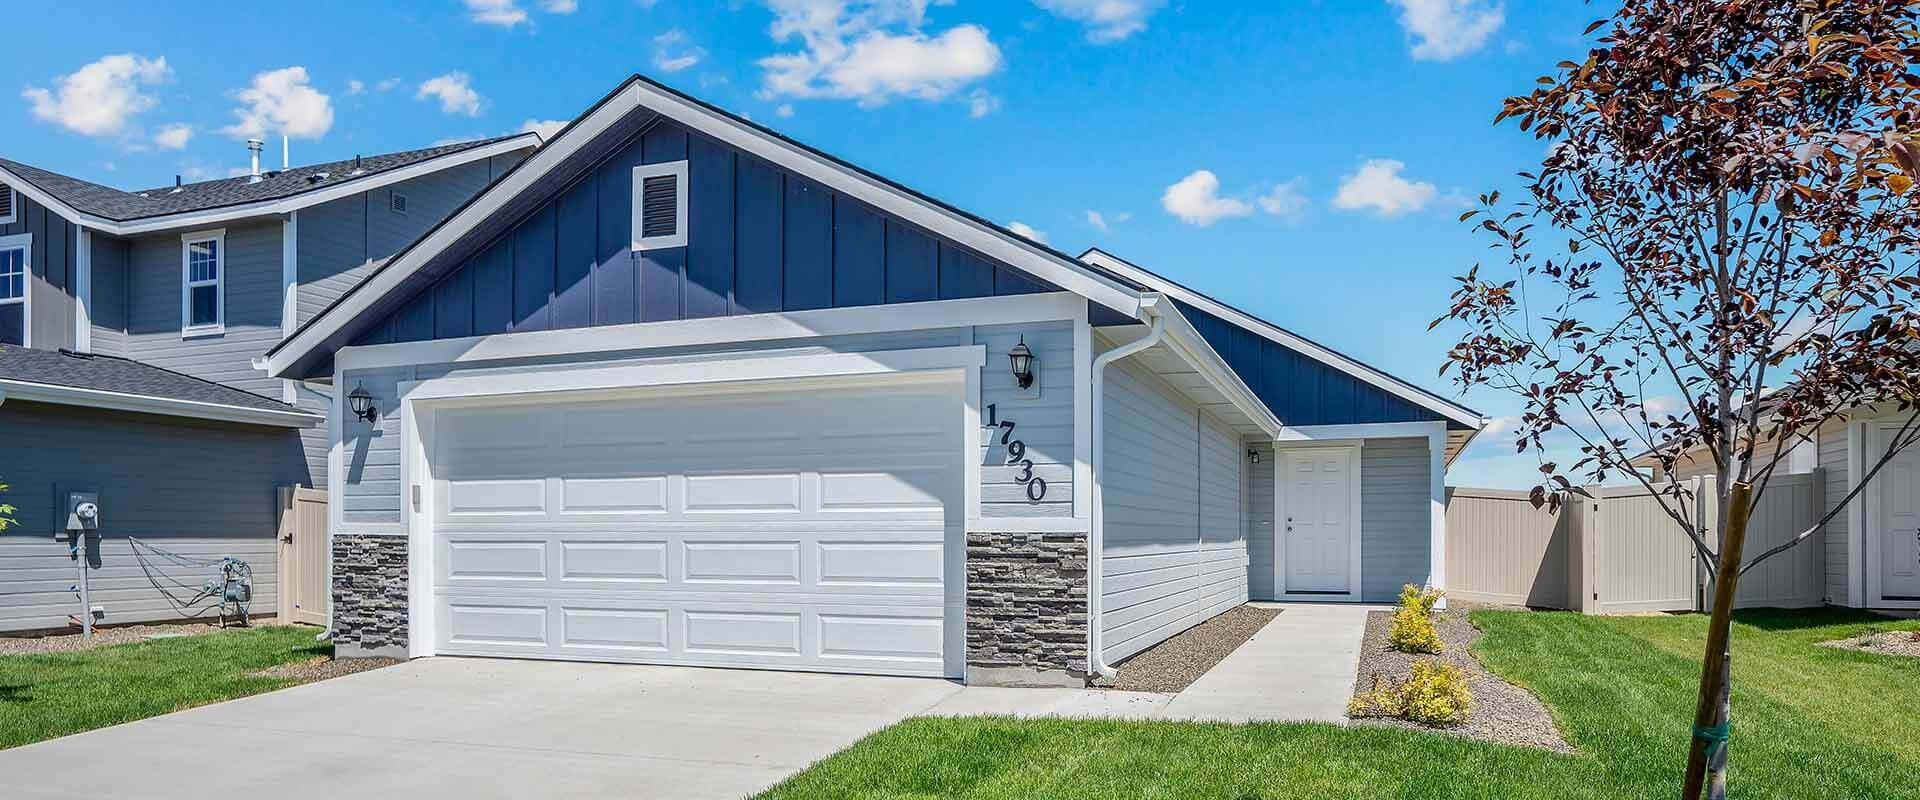 Huckleberry_Hubble_Homes_New_Homes_Boise_0005_Exterior - Huckleberry -17930 Hensley Ridge Pl-3.jpg